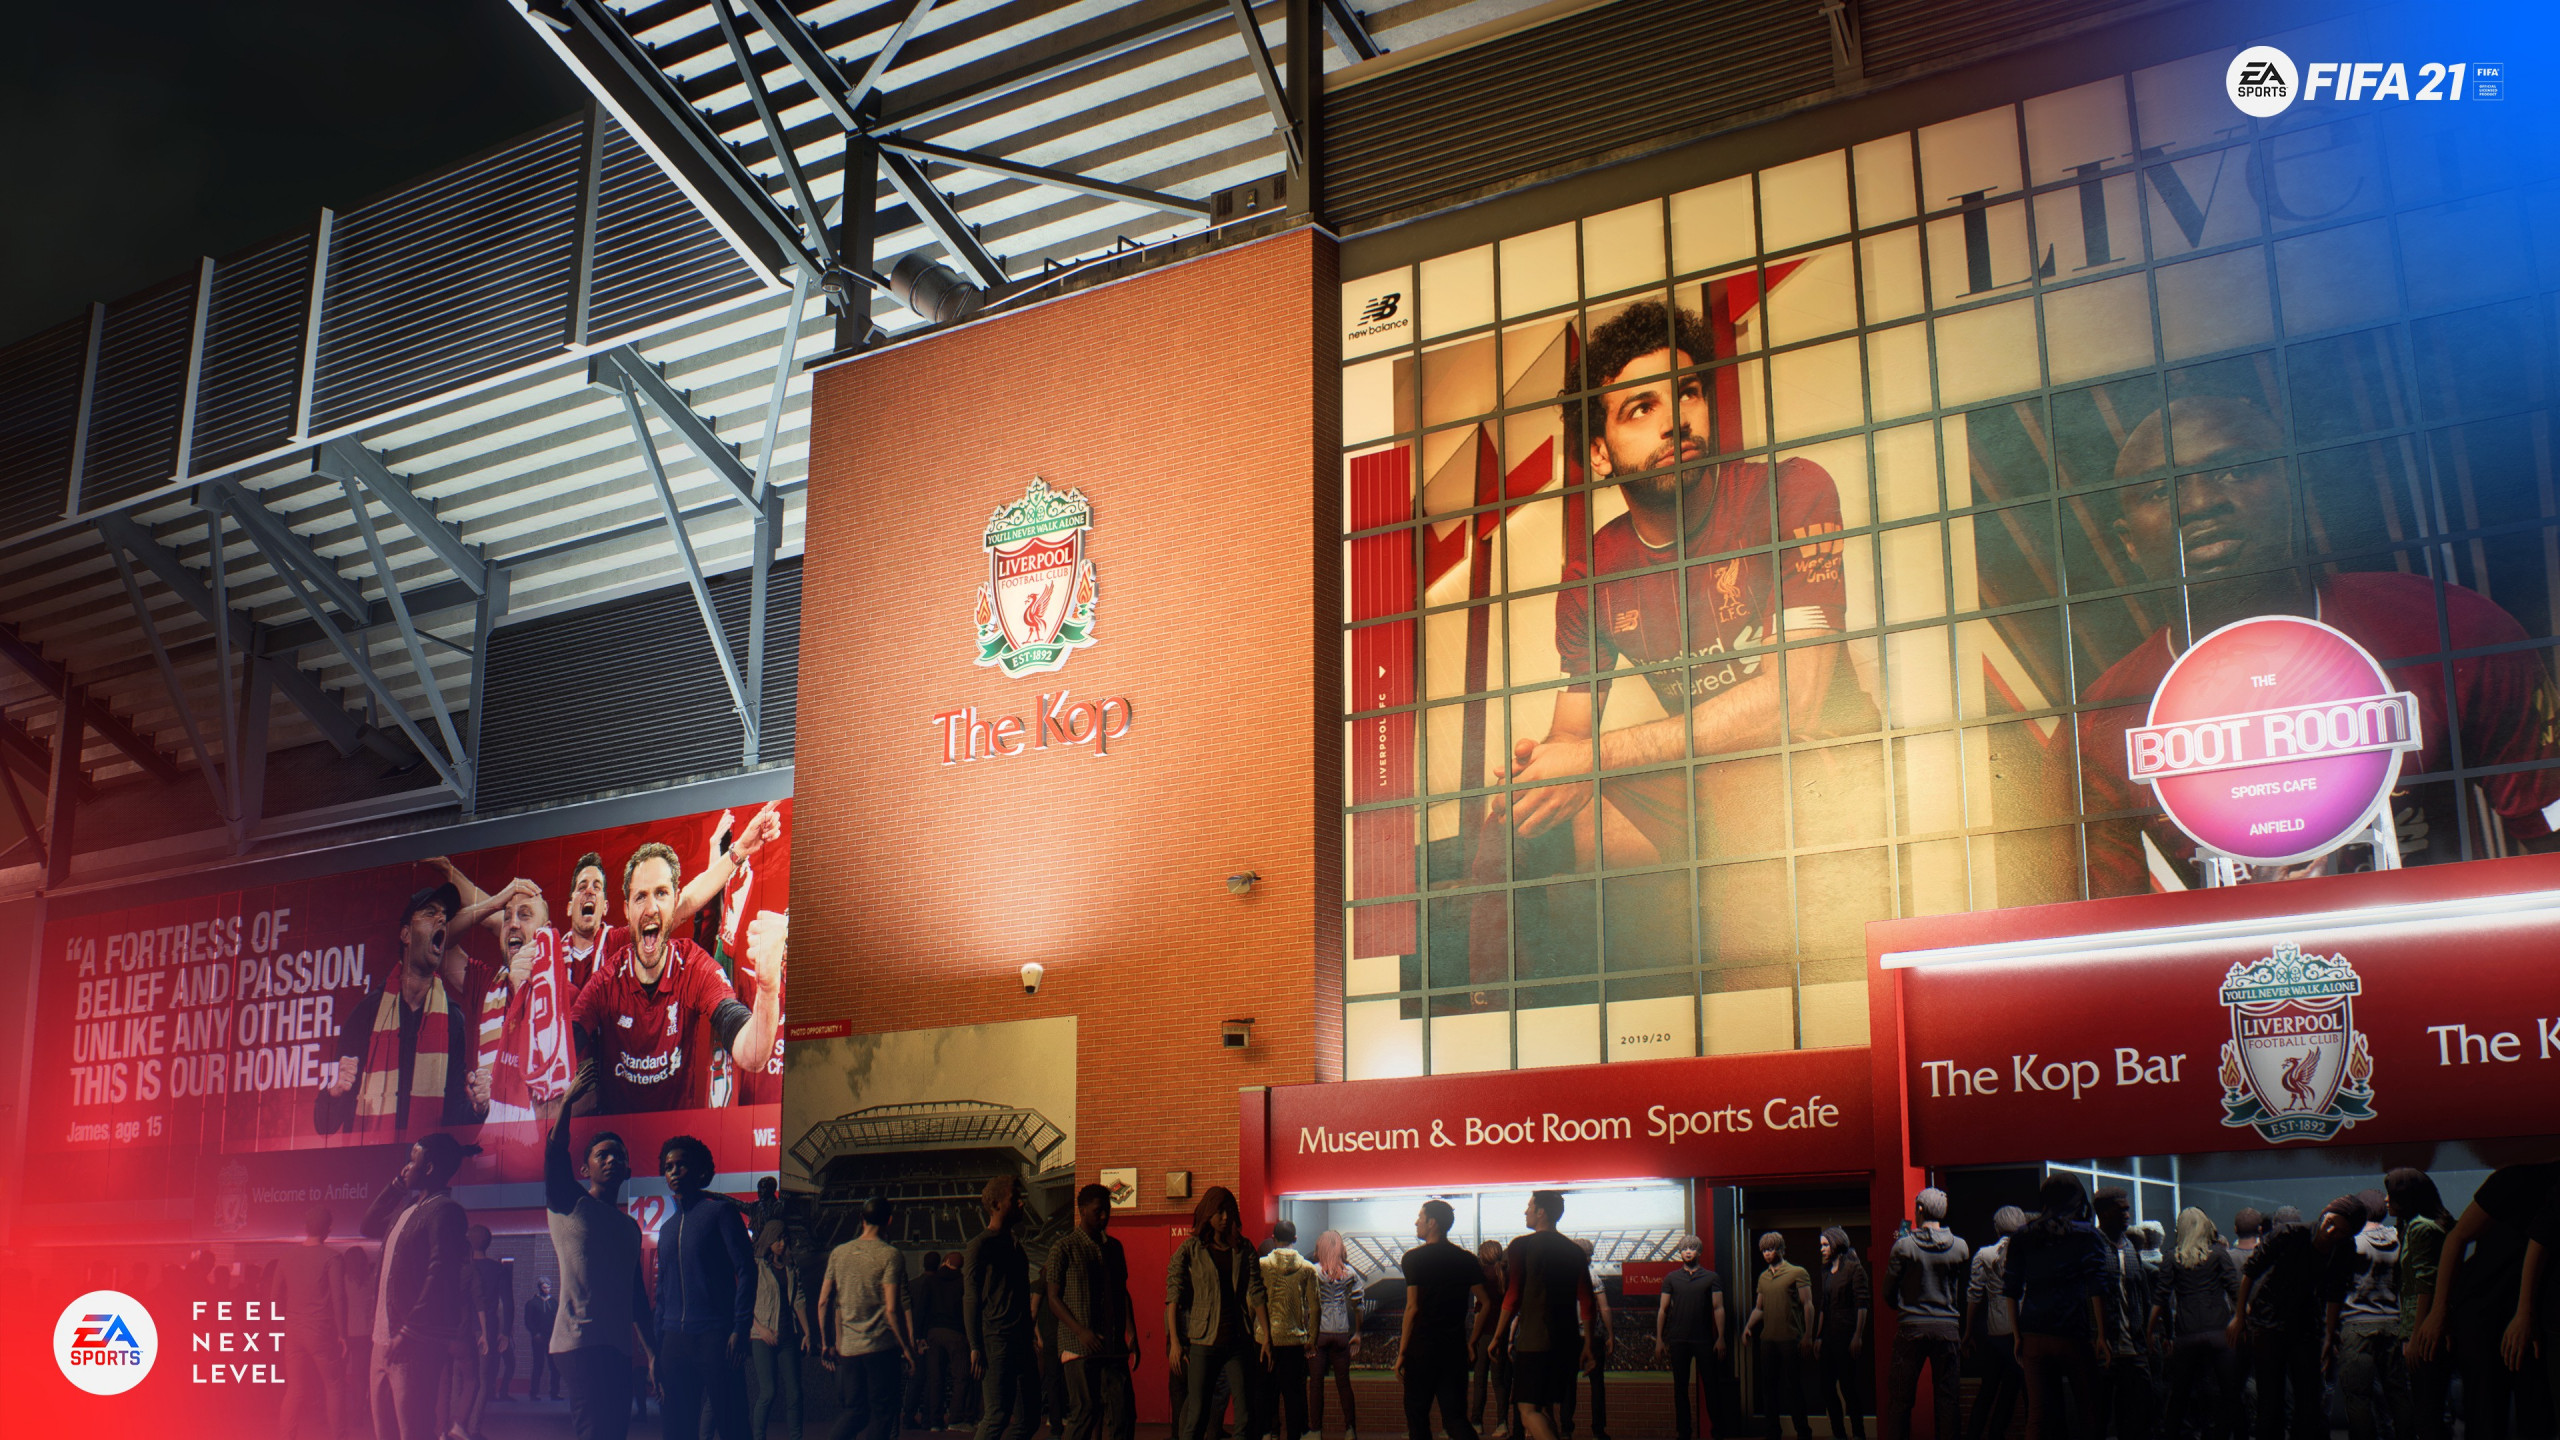 FIFA 21 Liverpool Stadium wallpaper 2560x1440